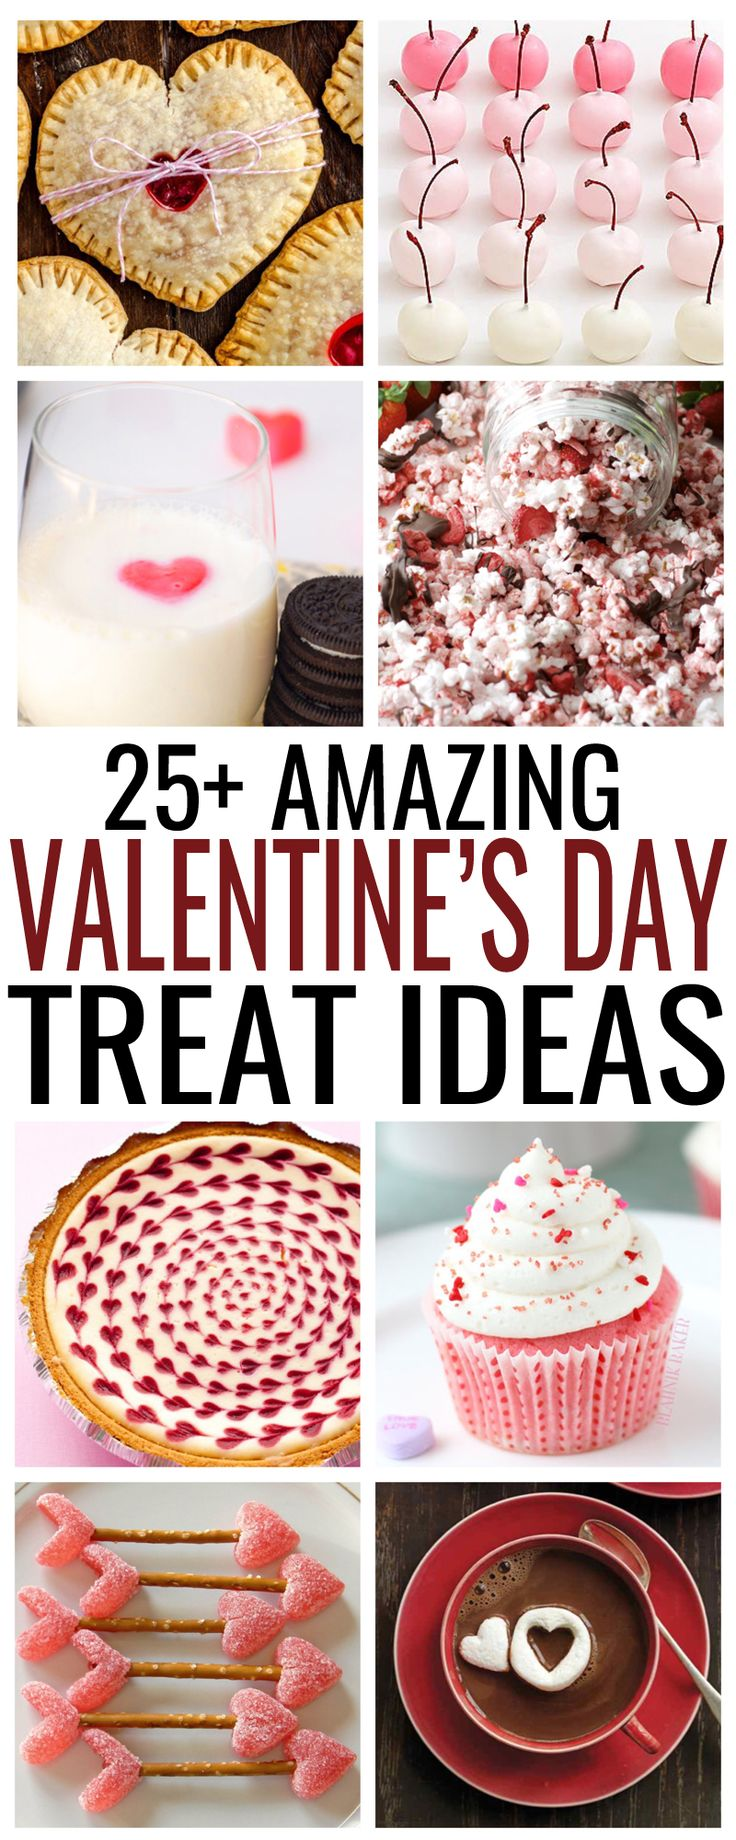 valentine's day treats and desserts